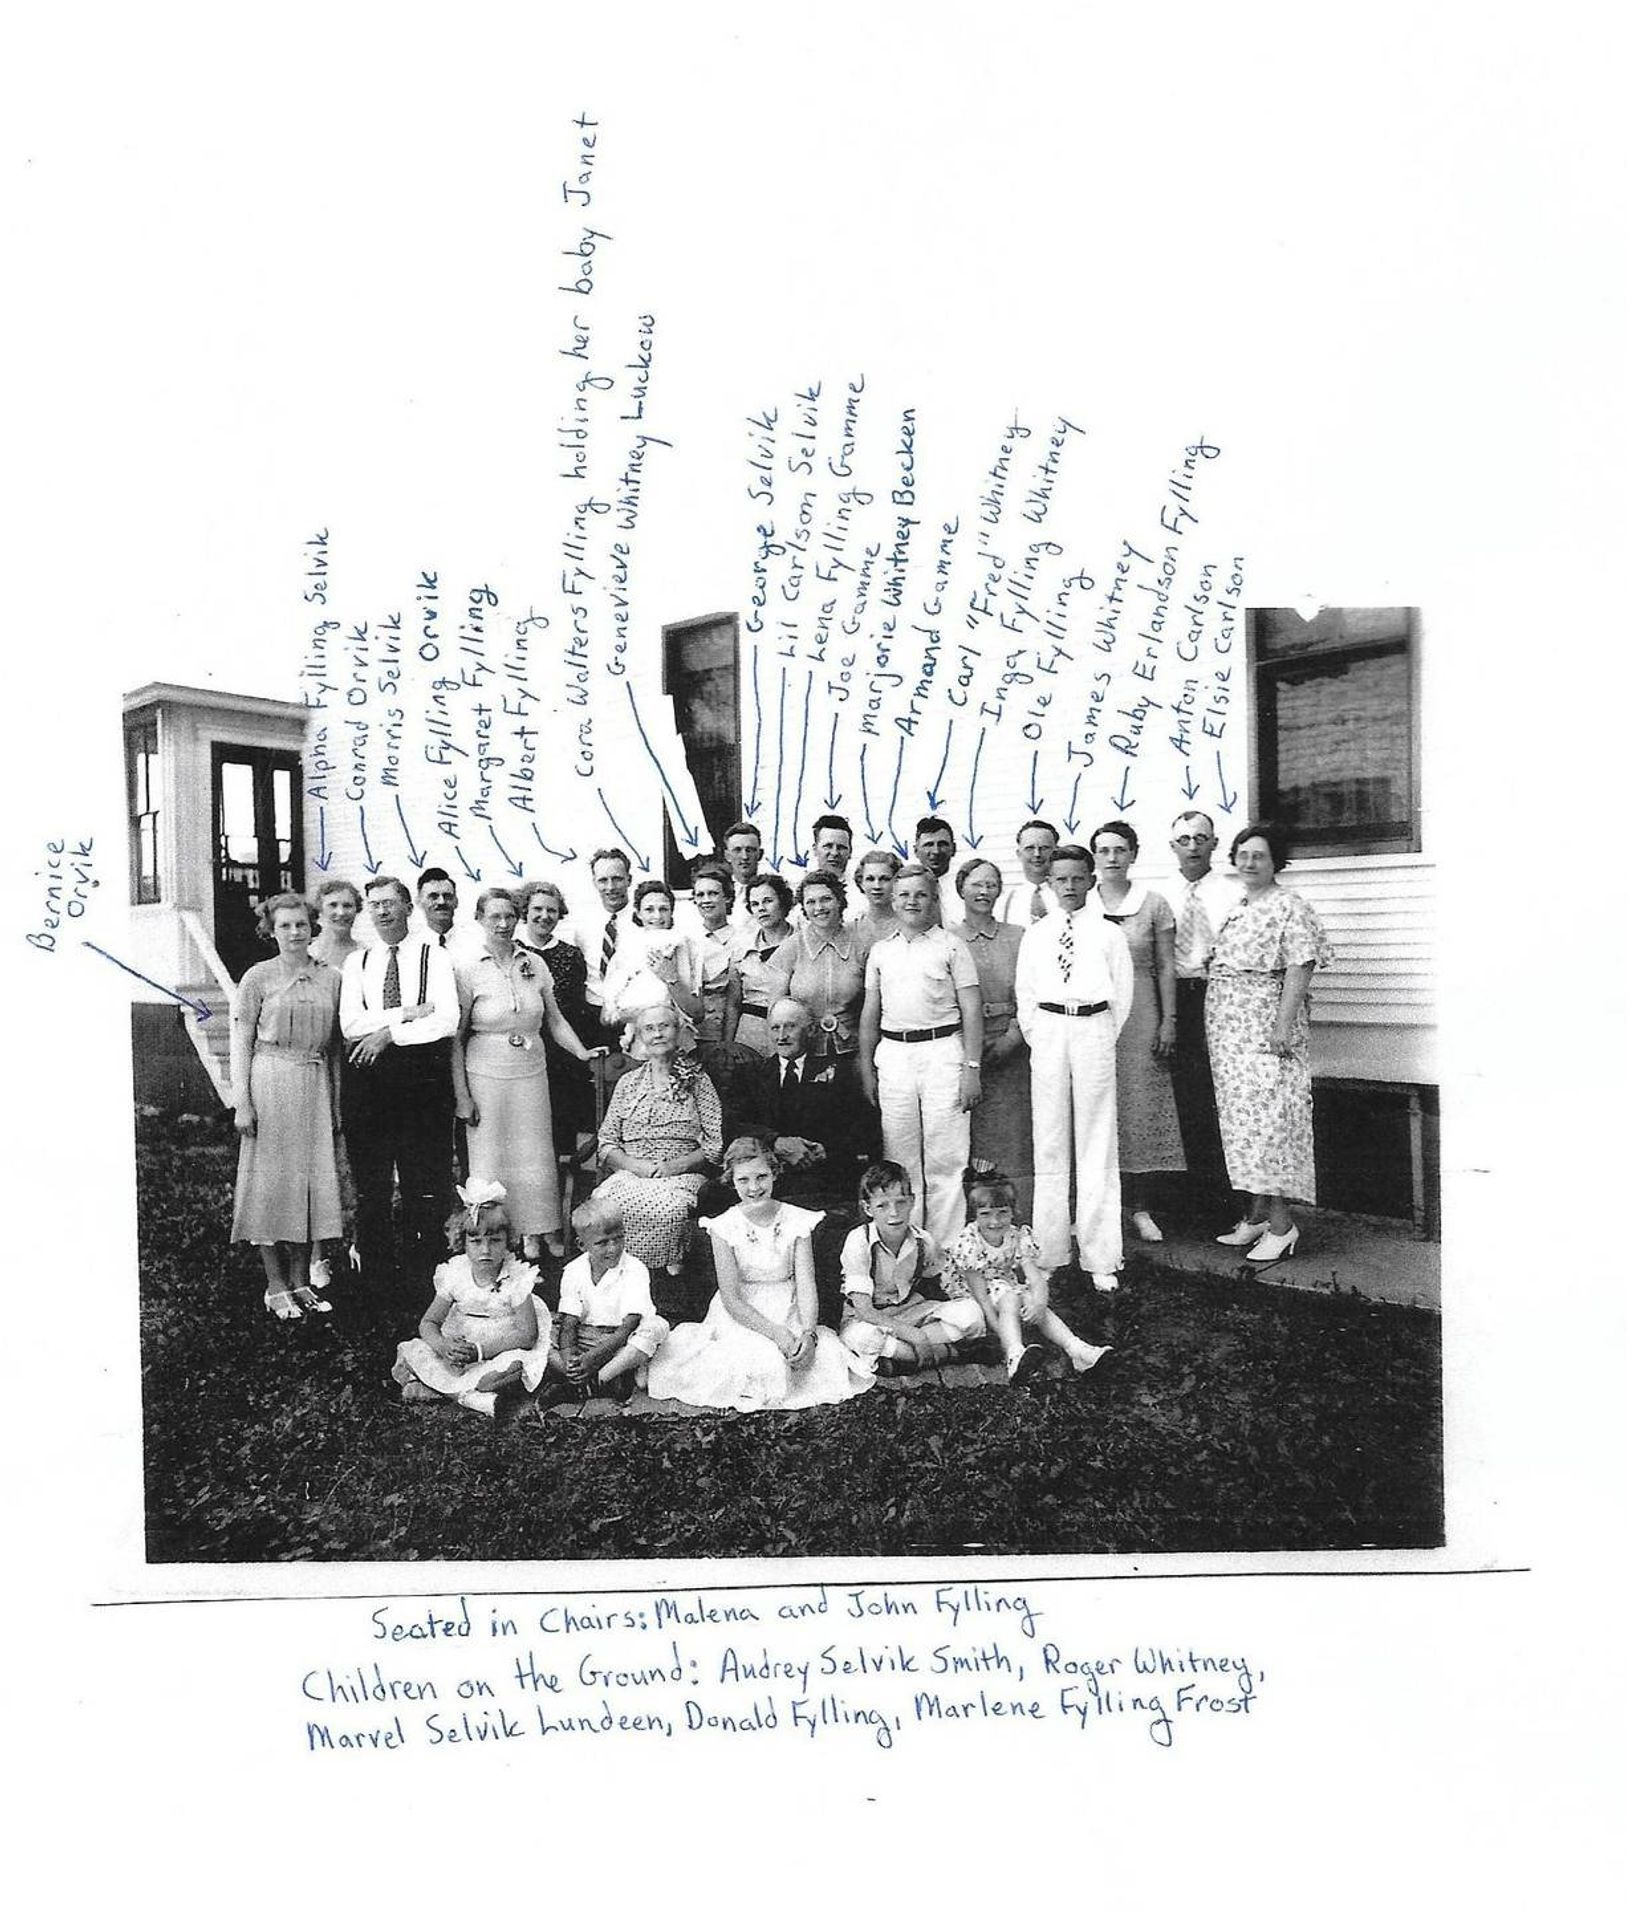 Large group of family members with names inscribed onto the photograph